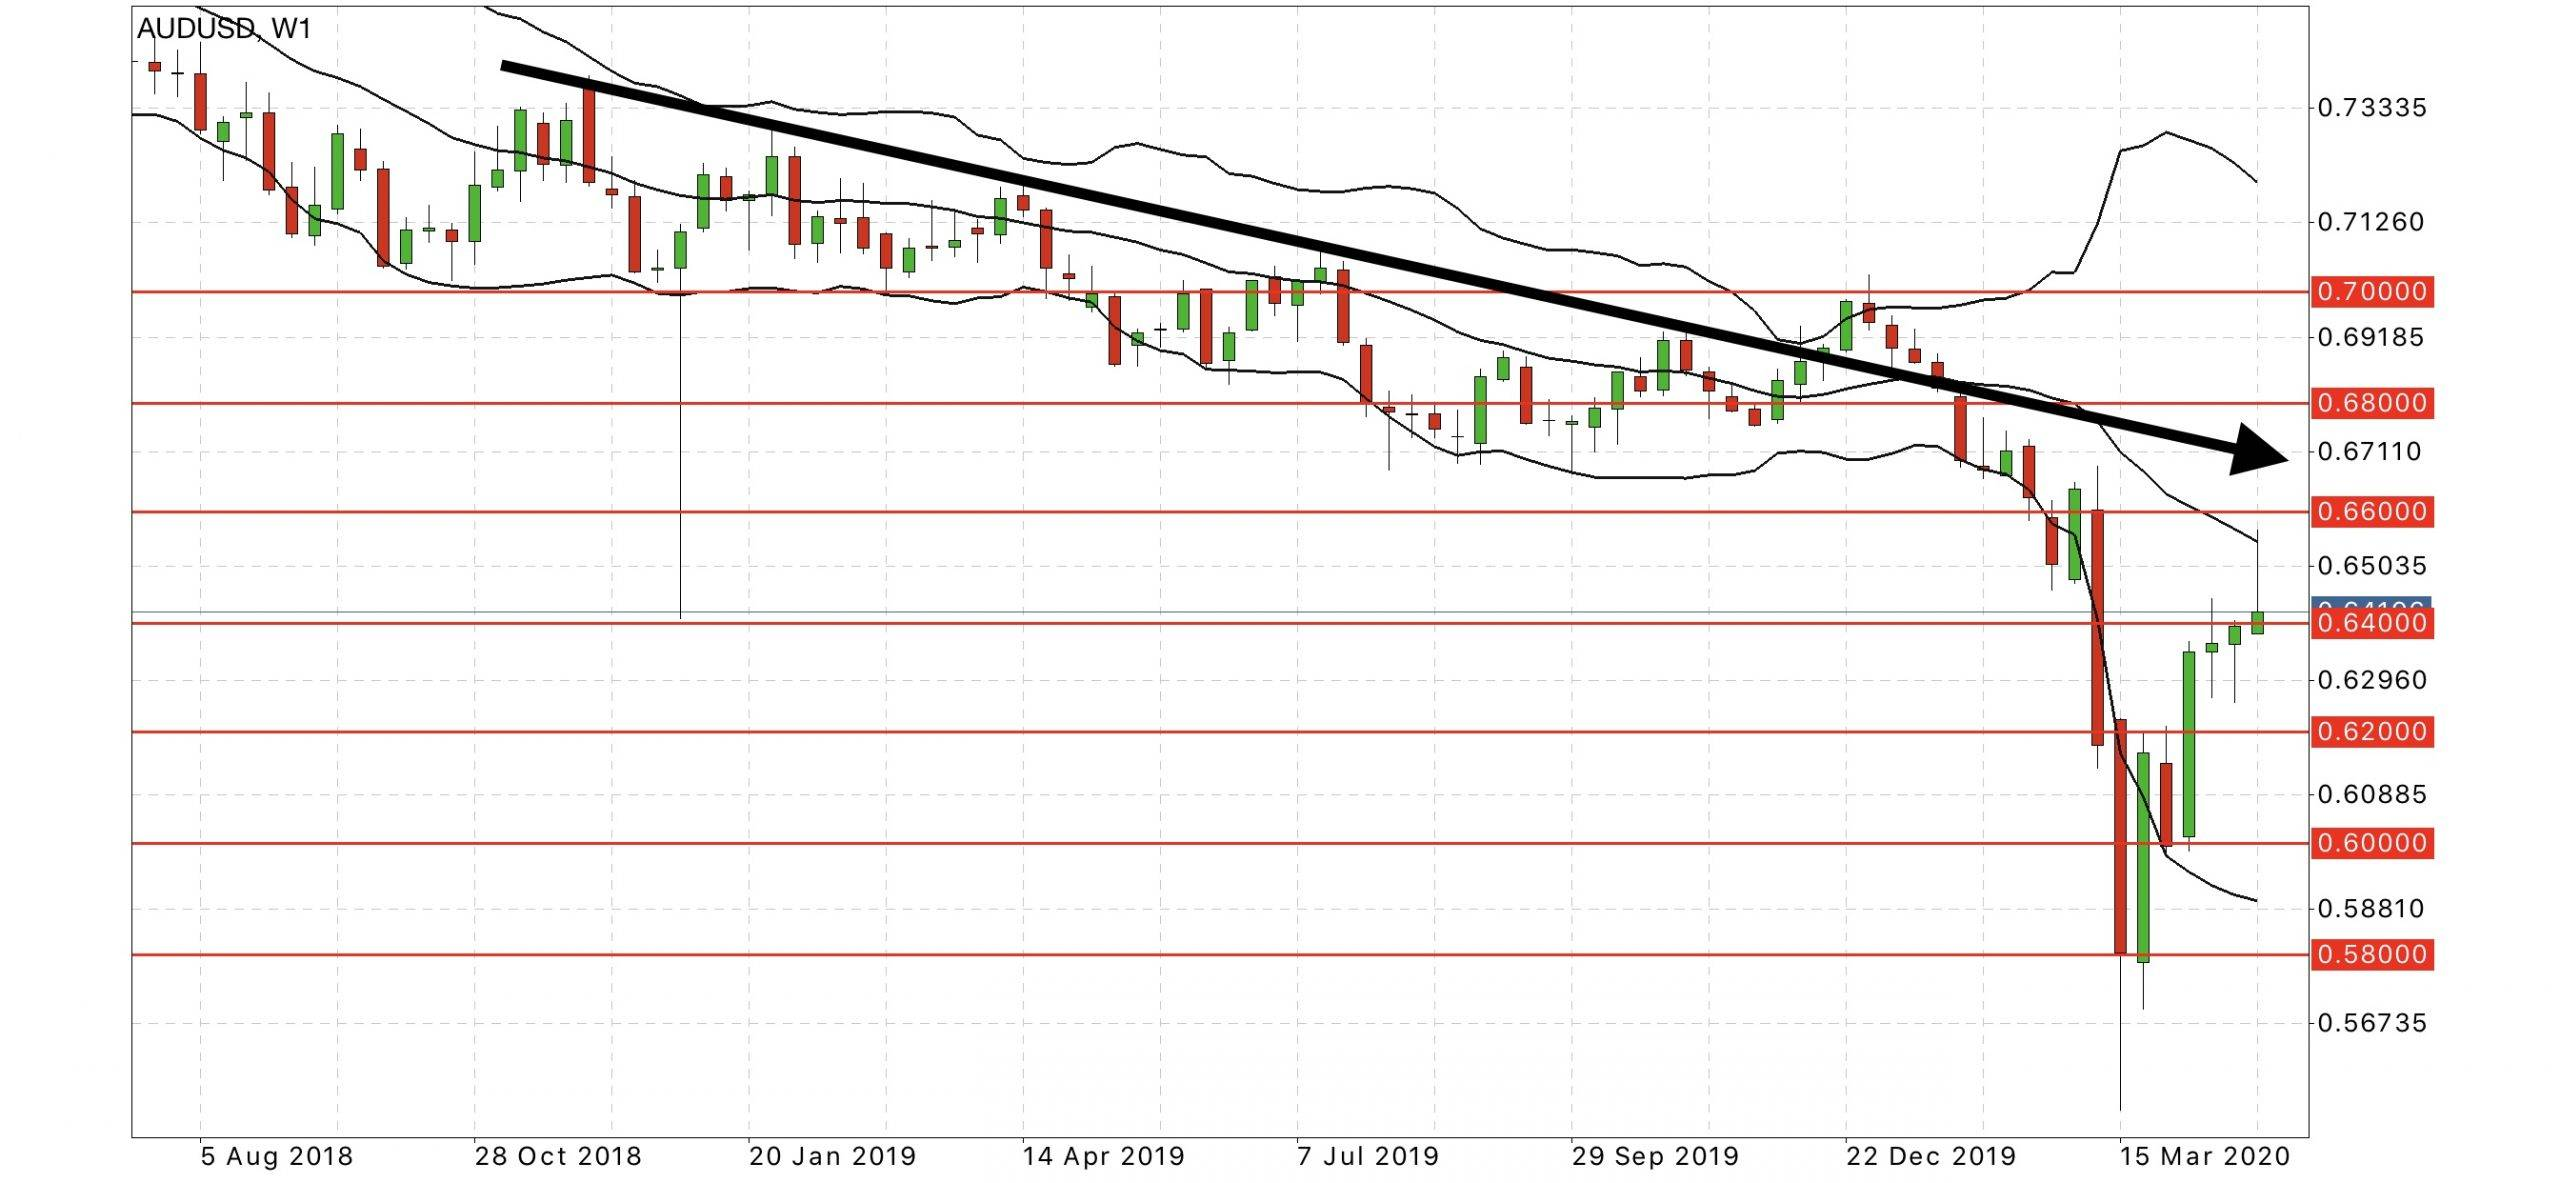 aud usd forex forecast chart